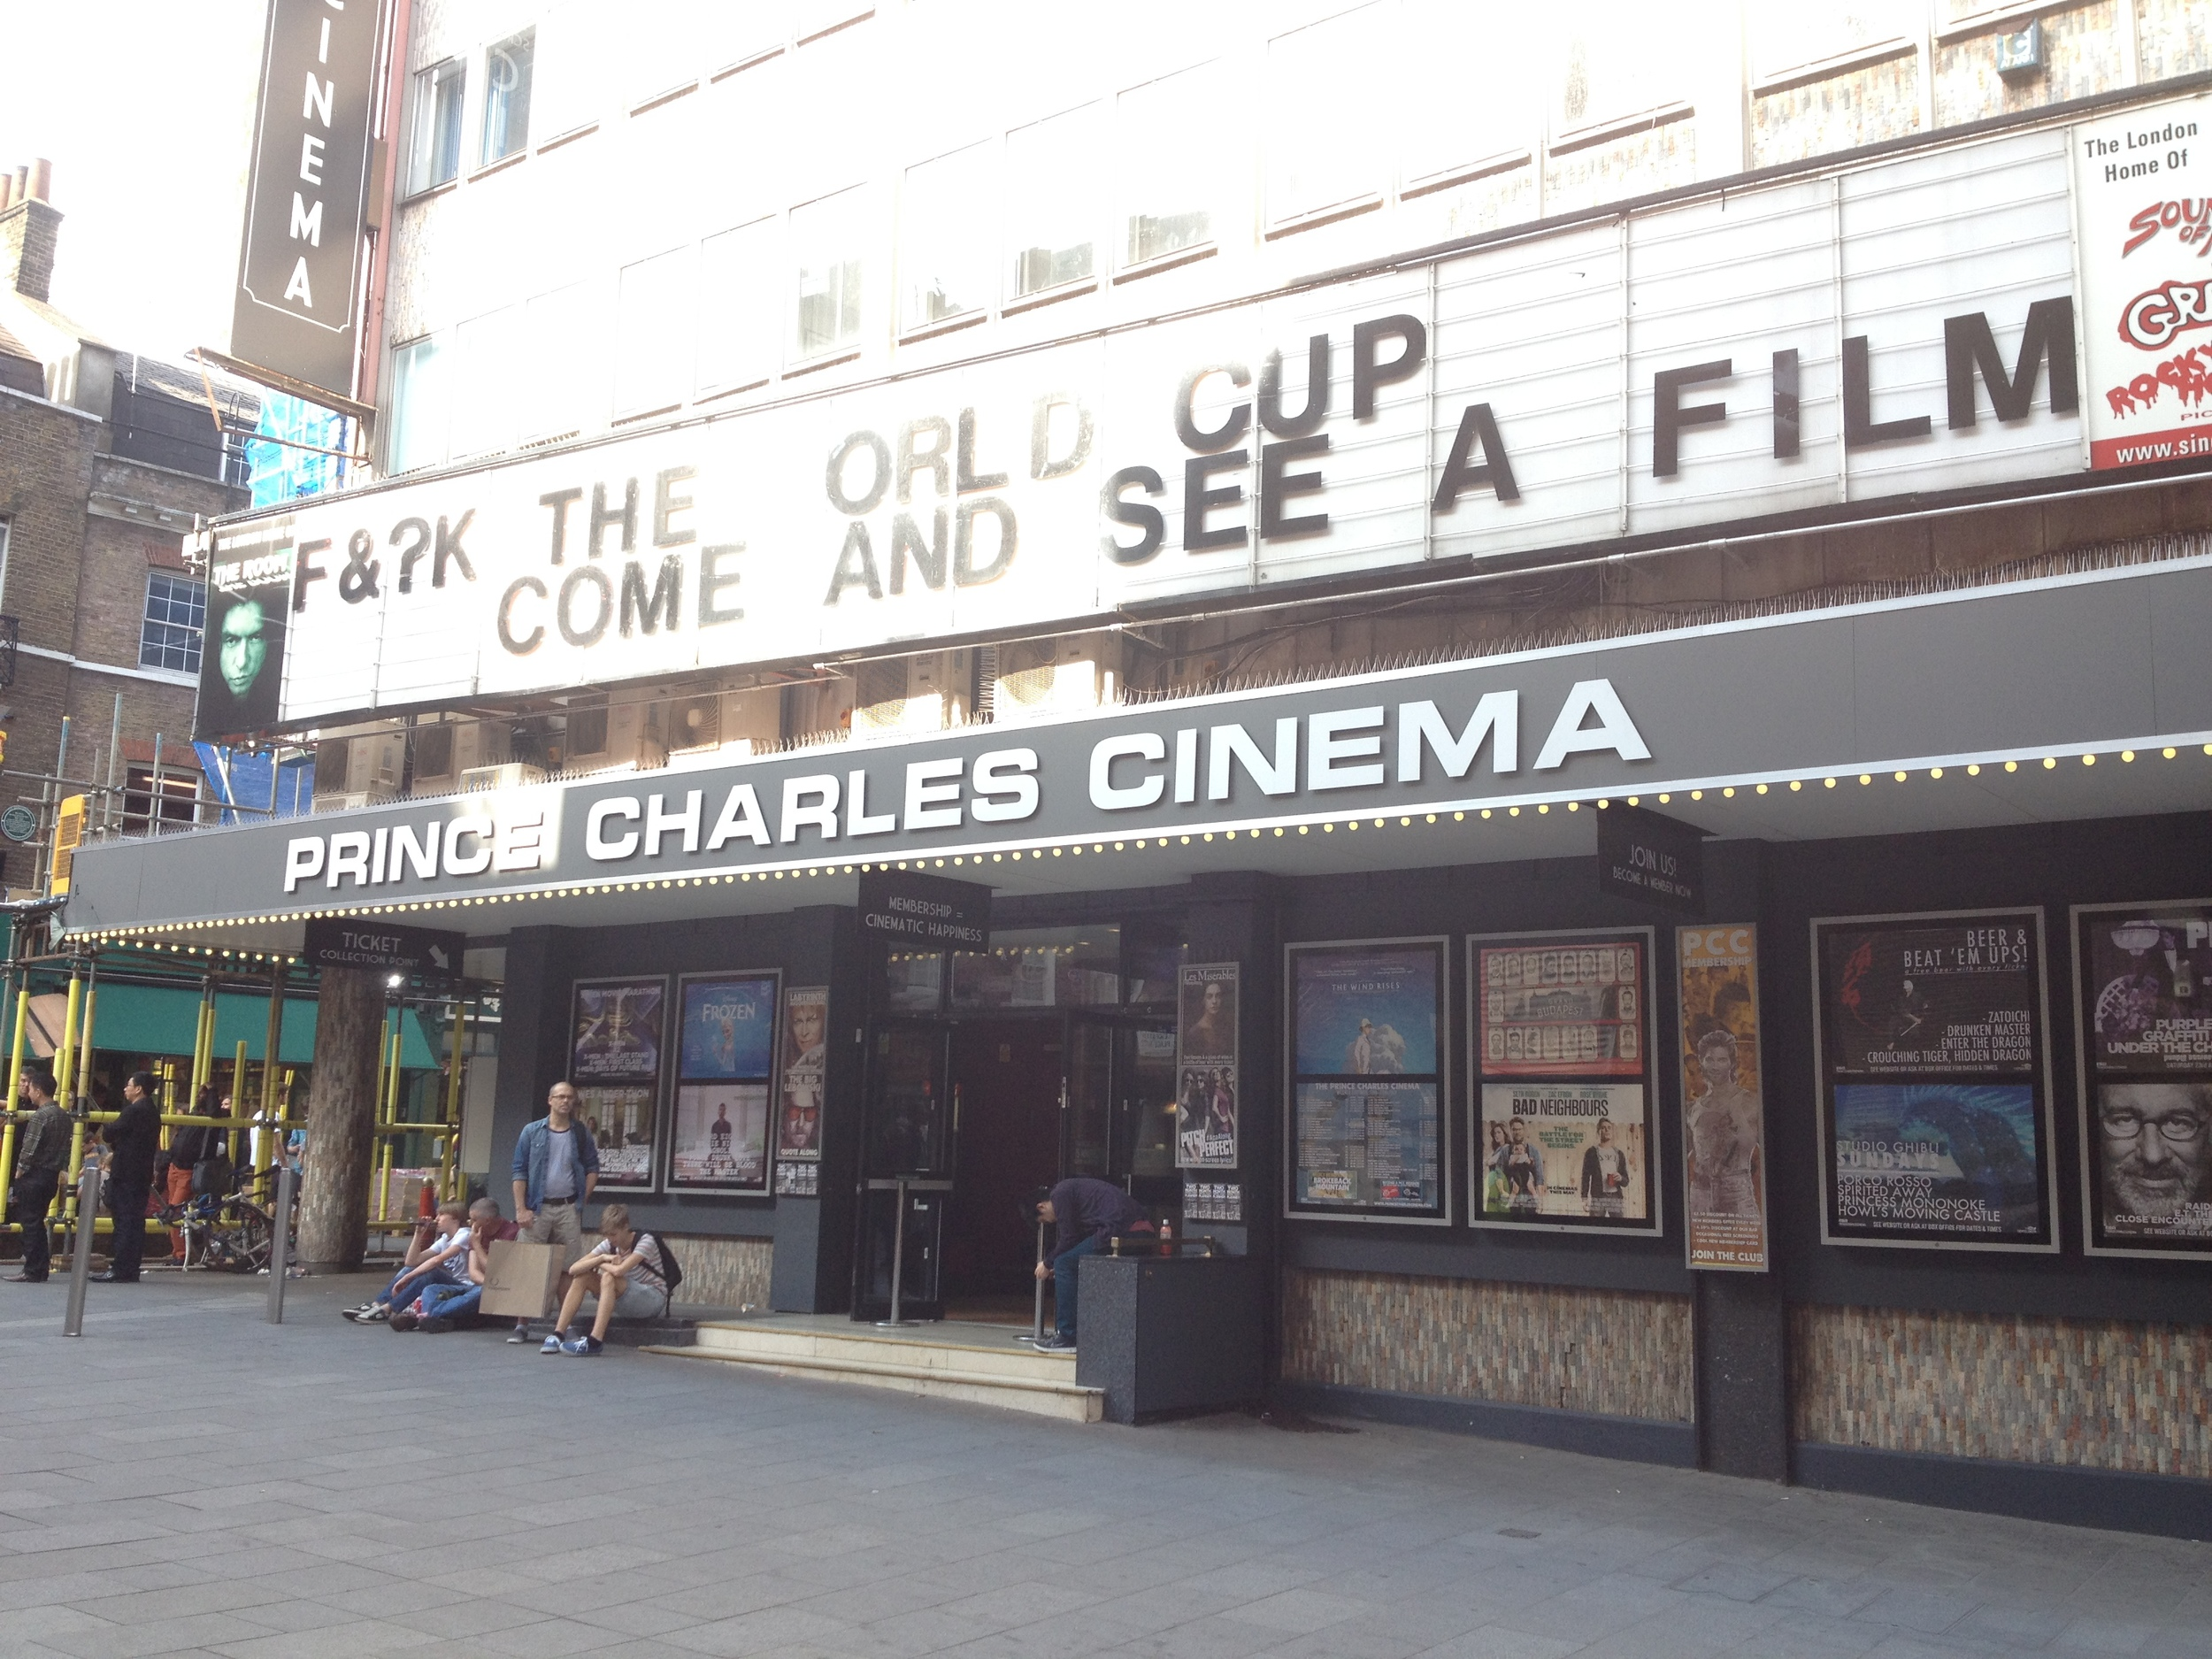 The Prince Charles Cinema in June 2014. Photograph by Paul Forrester